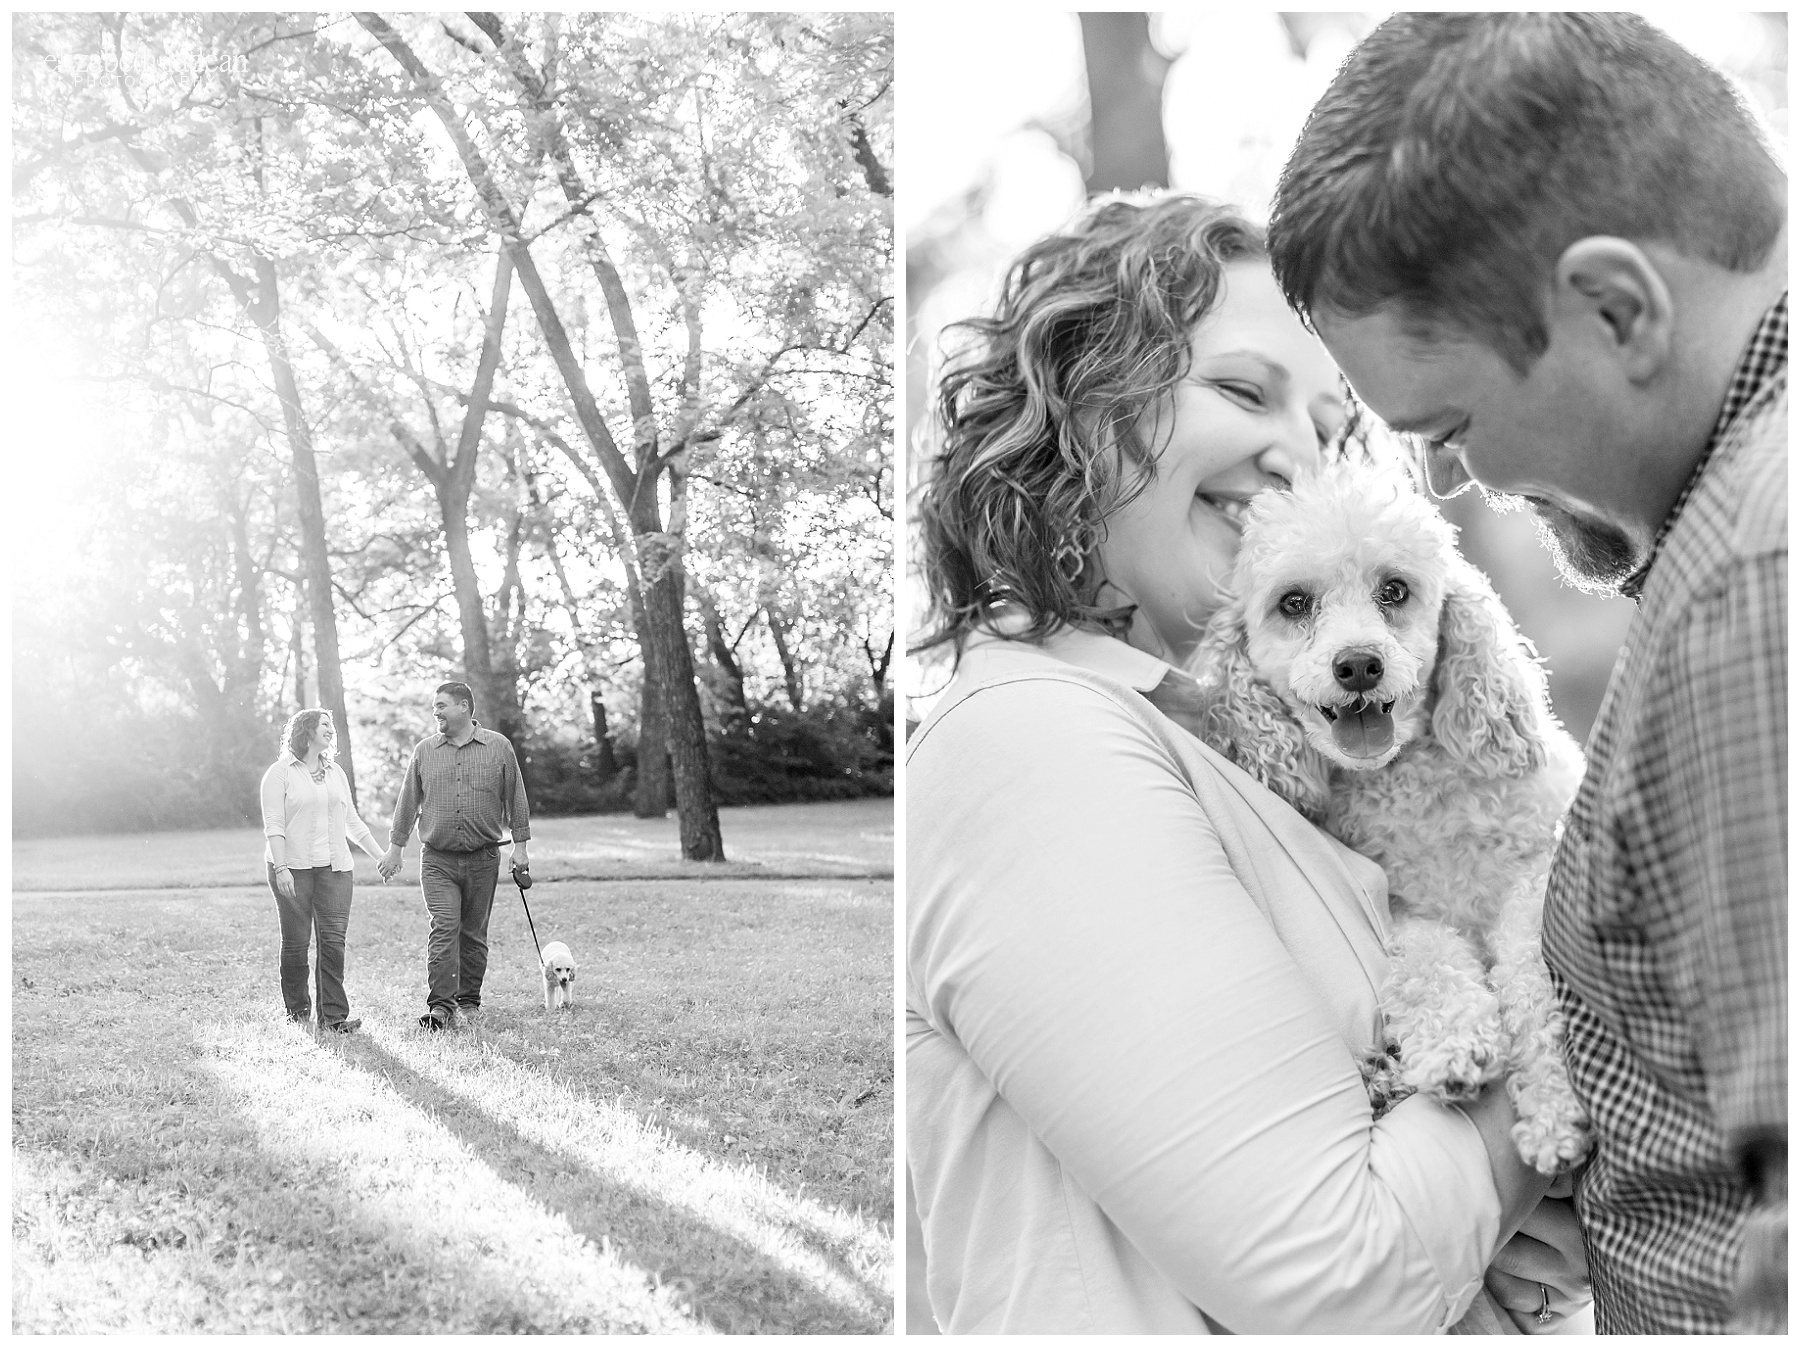 Kansas-City-Engagement-Photography-Shawnee-Mission-H+JJ2017-Elizabeth-Ladean-Photography-photo_1928.jpg